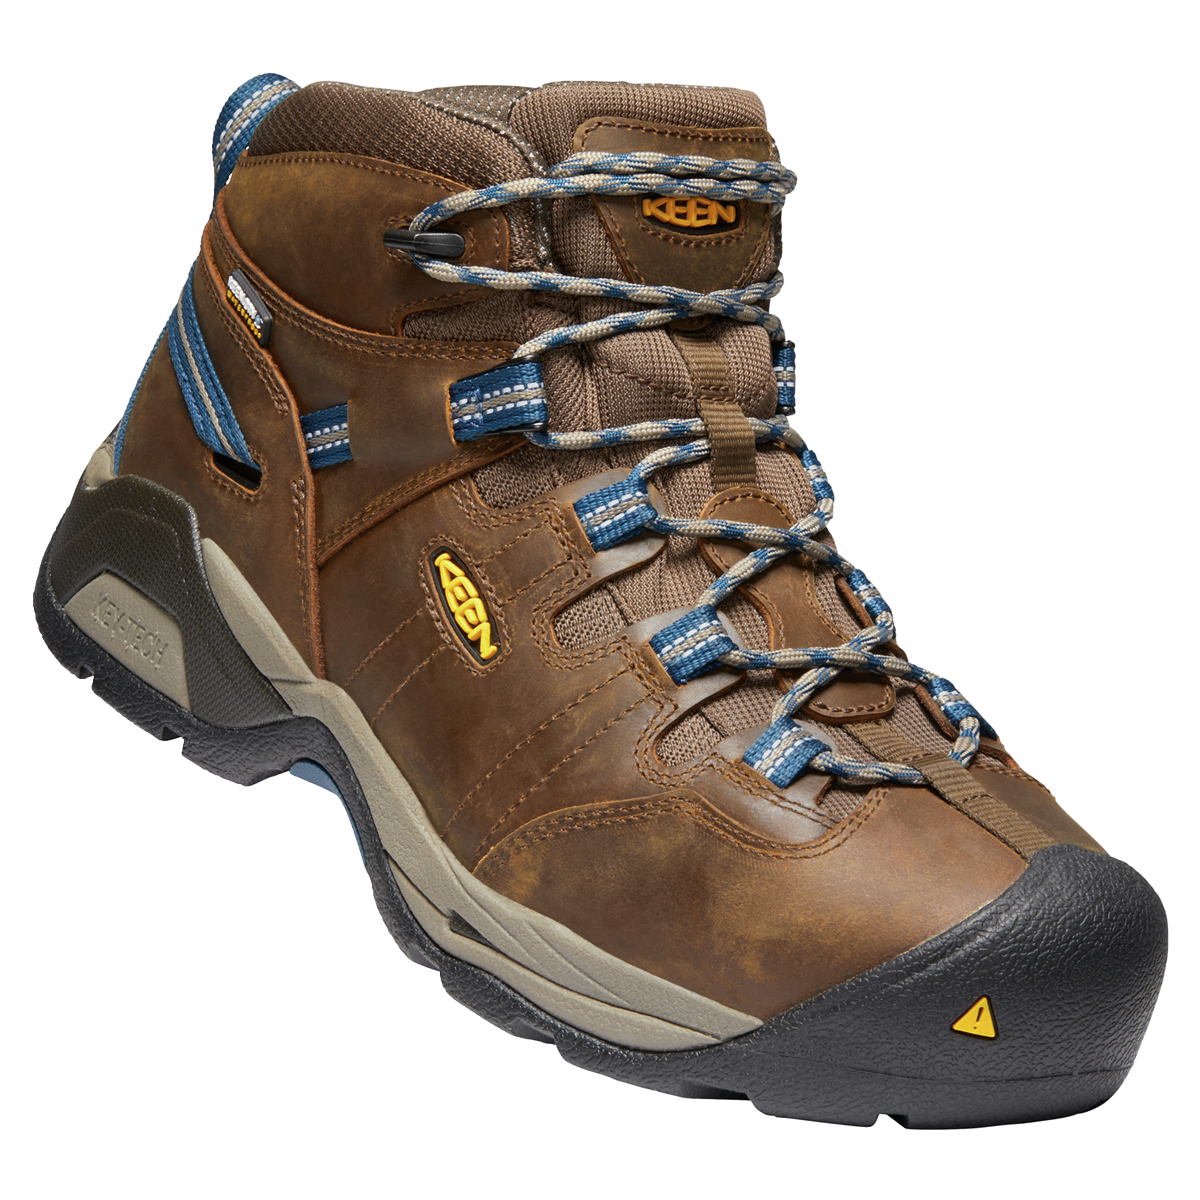 Keen Utility Safety Shoes | JTC